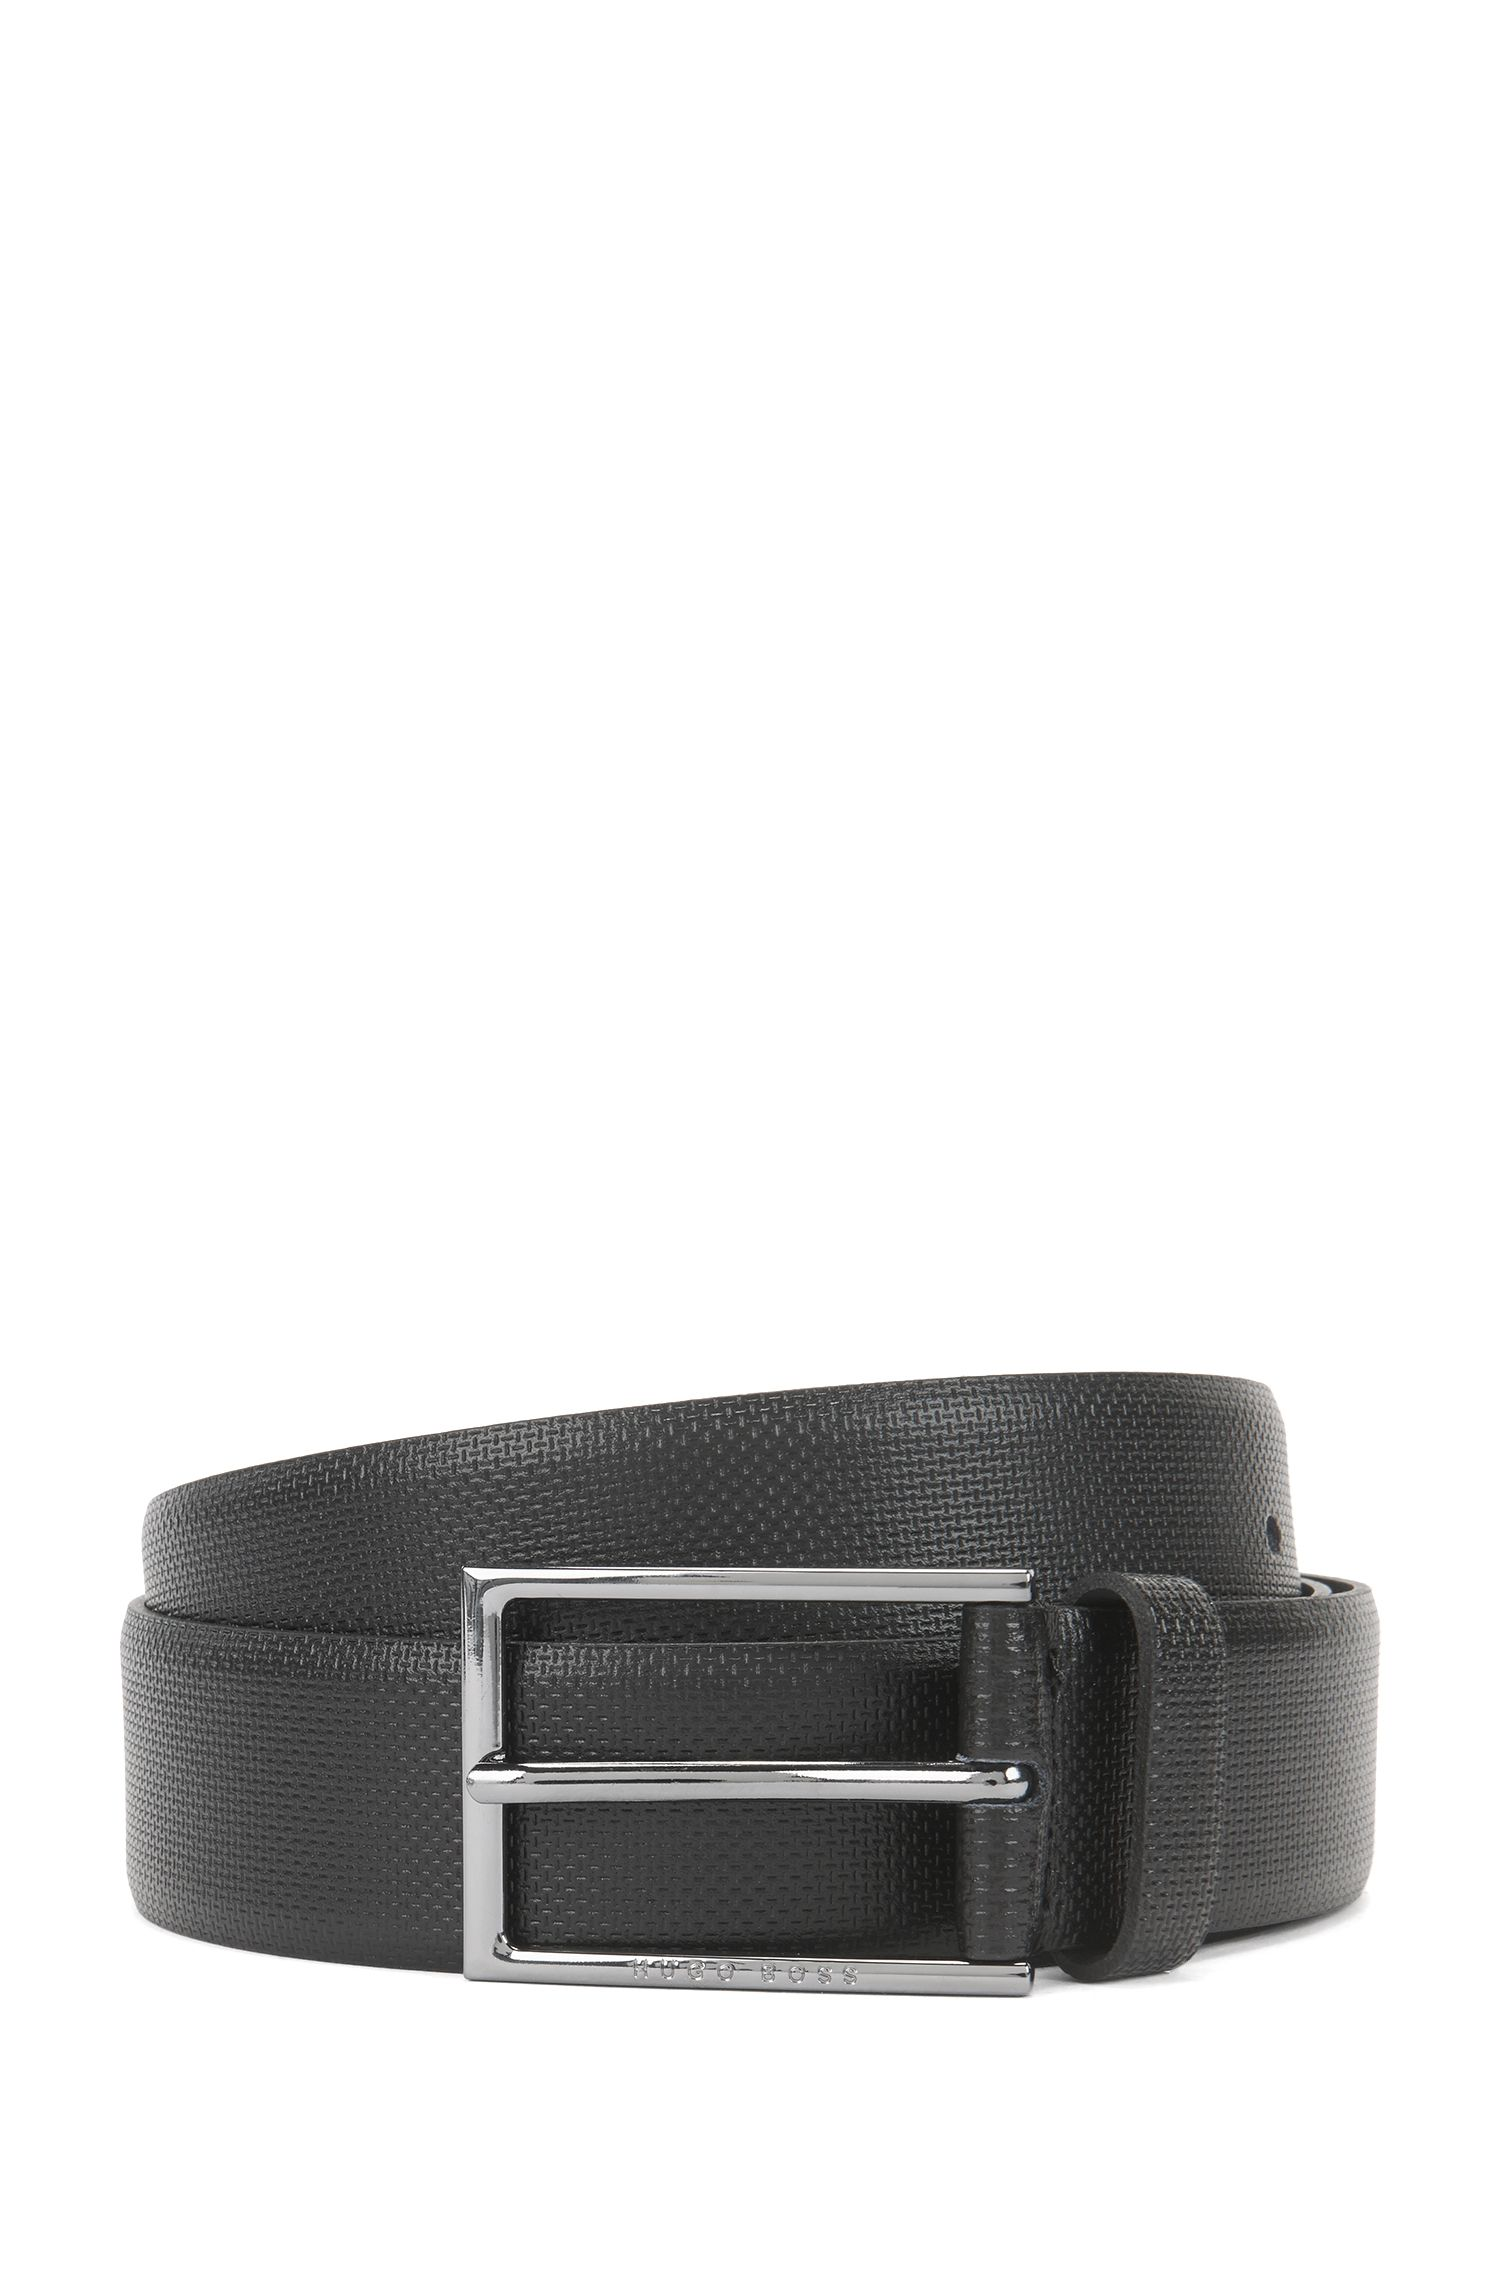 Leather Printed Belt | Carmello S